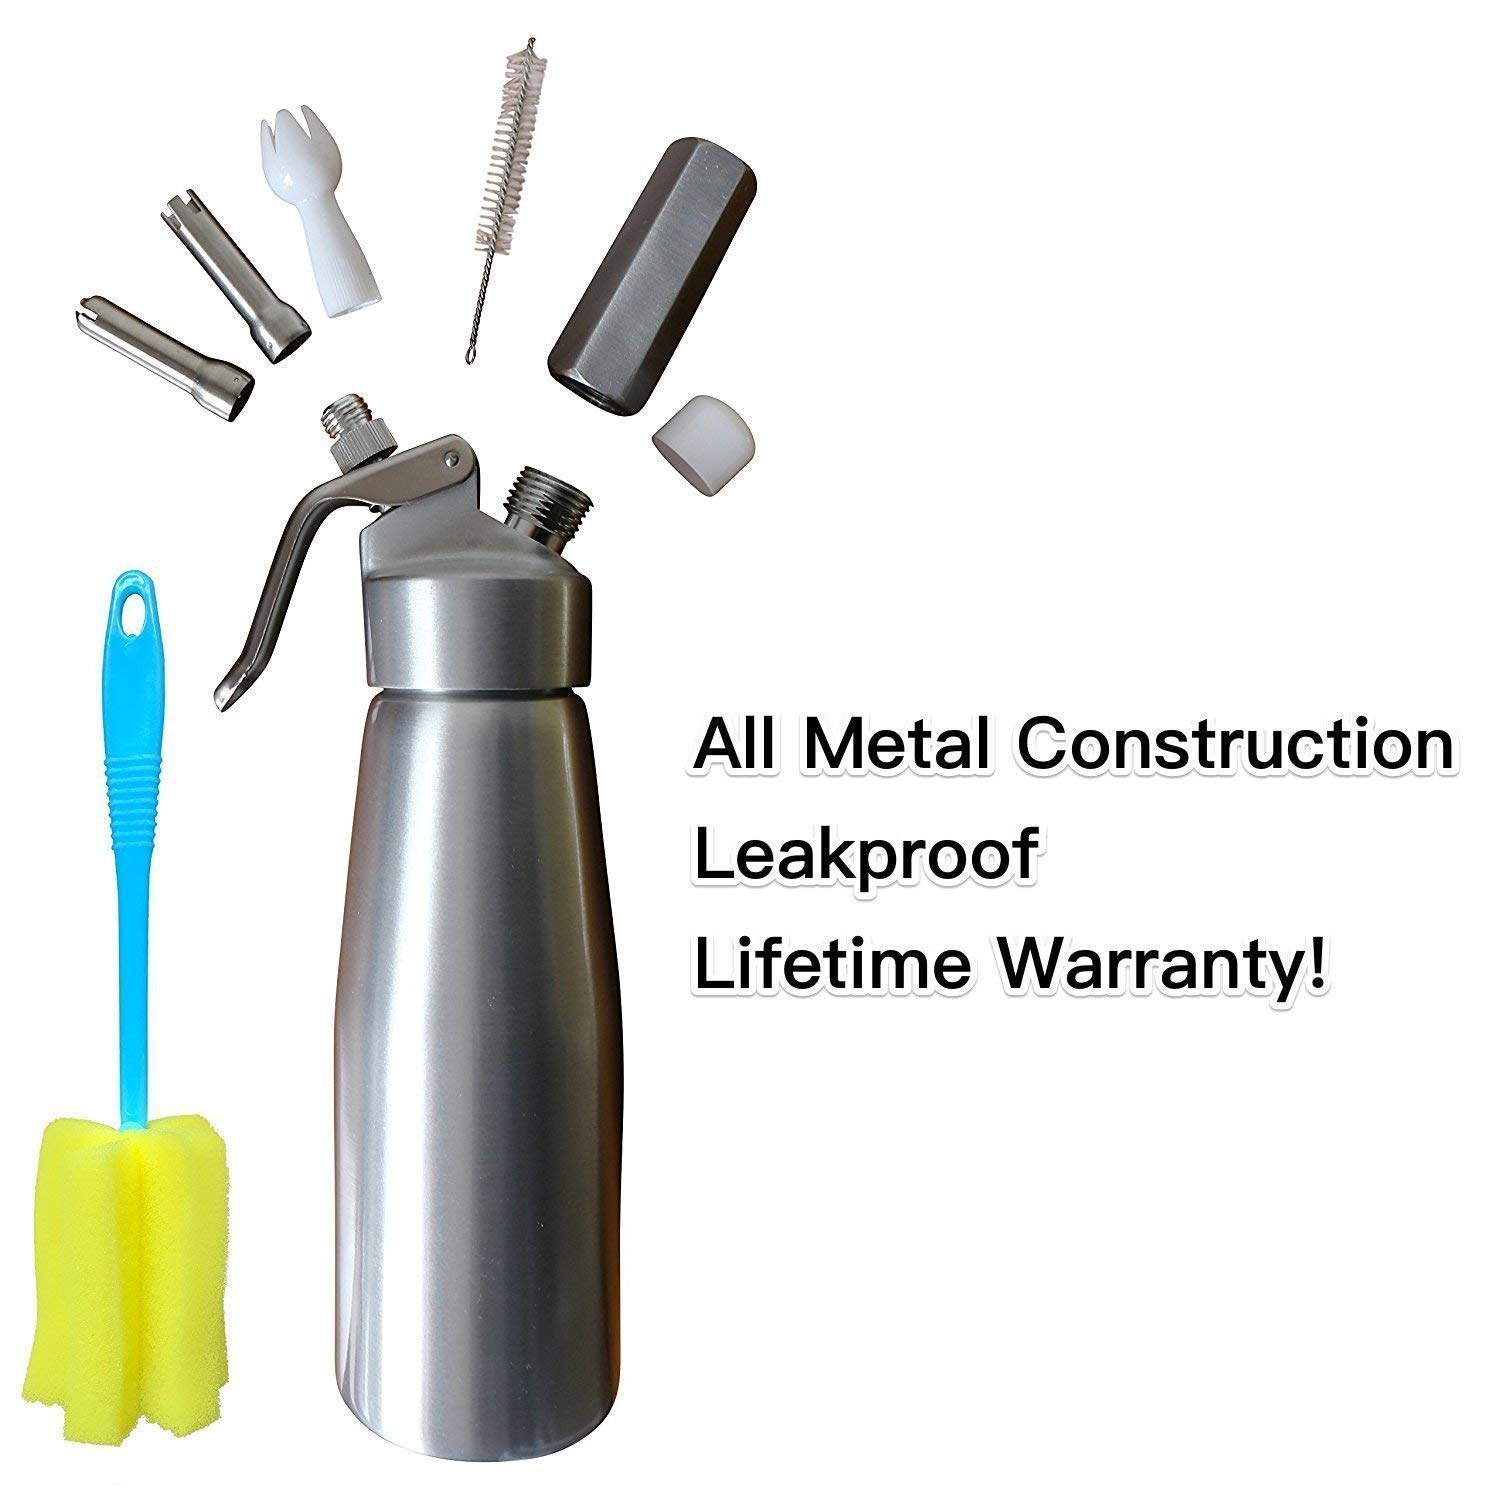 Whipped Cream Dispenser Cream Whipper Whipping Siphon Whip Cream Charger Seltzer Water Maker Aluminum 1 Pint Stainless Steel Tips Bonus Recipe Ebook Cleaning Brushes Animato Silver Nitro Cold Brew